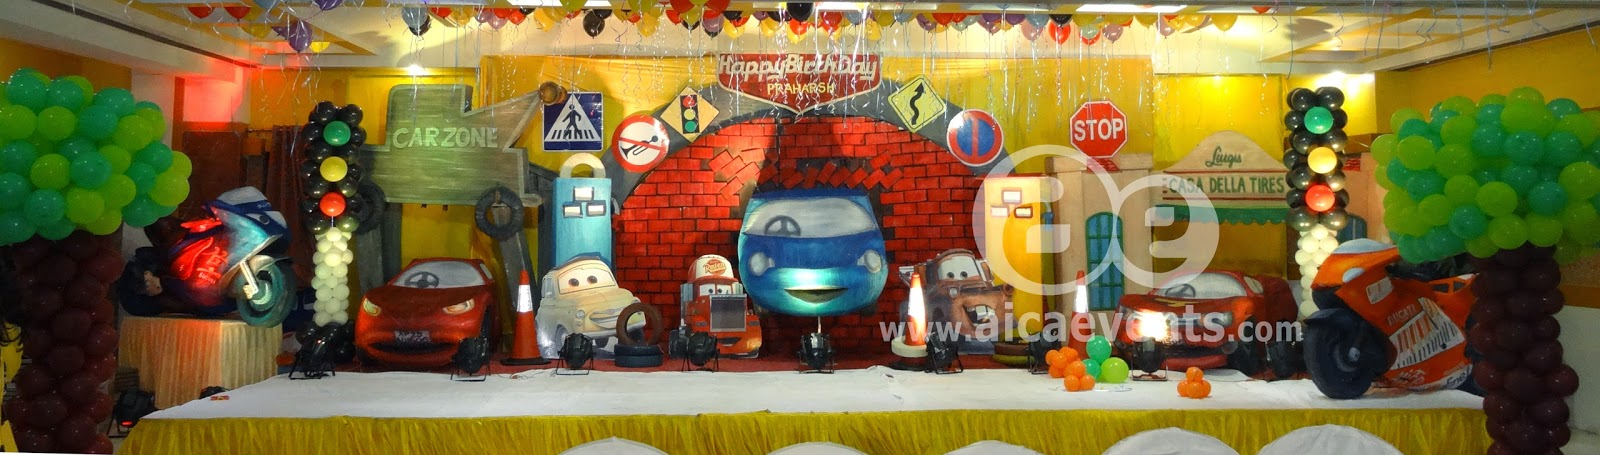 aicaevents Disney Cars Theme Birthday party